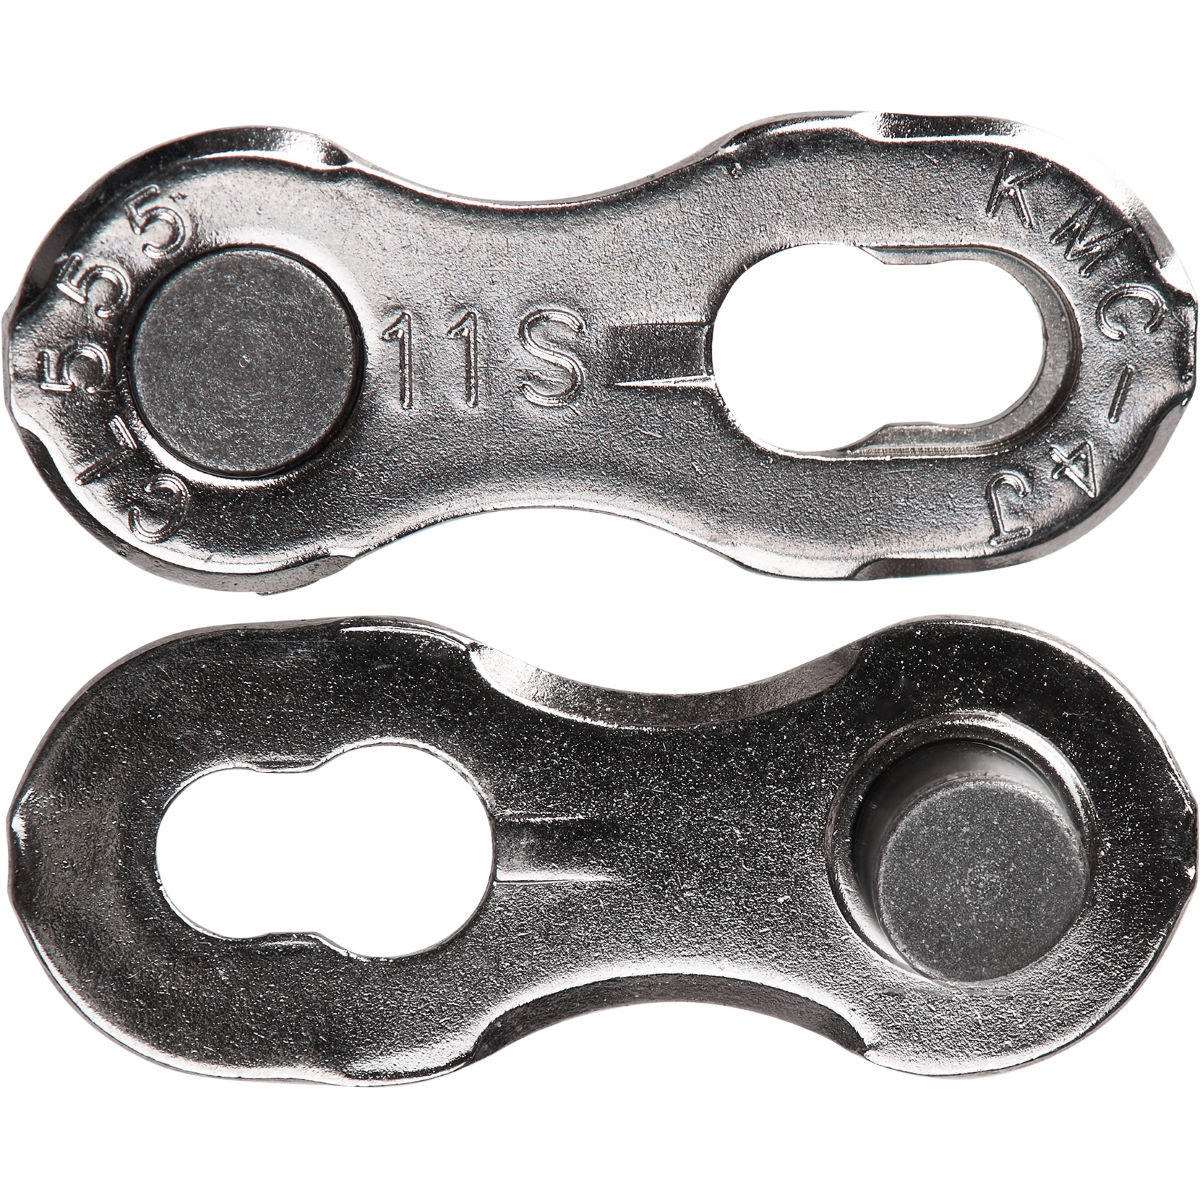 Image of CeramicSpeed Connection Link for 11S Chains